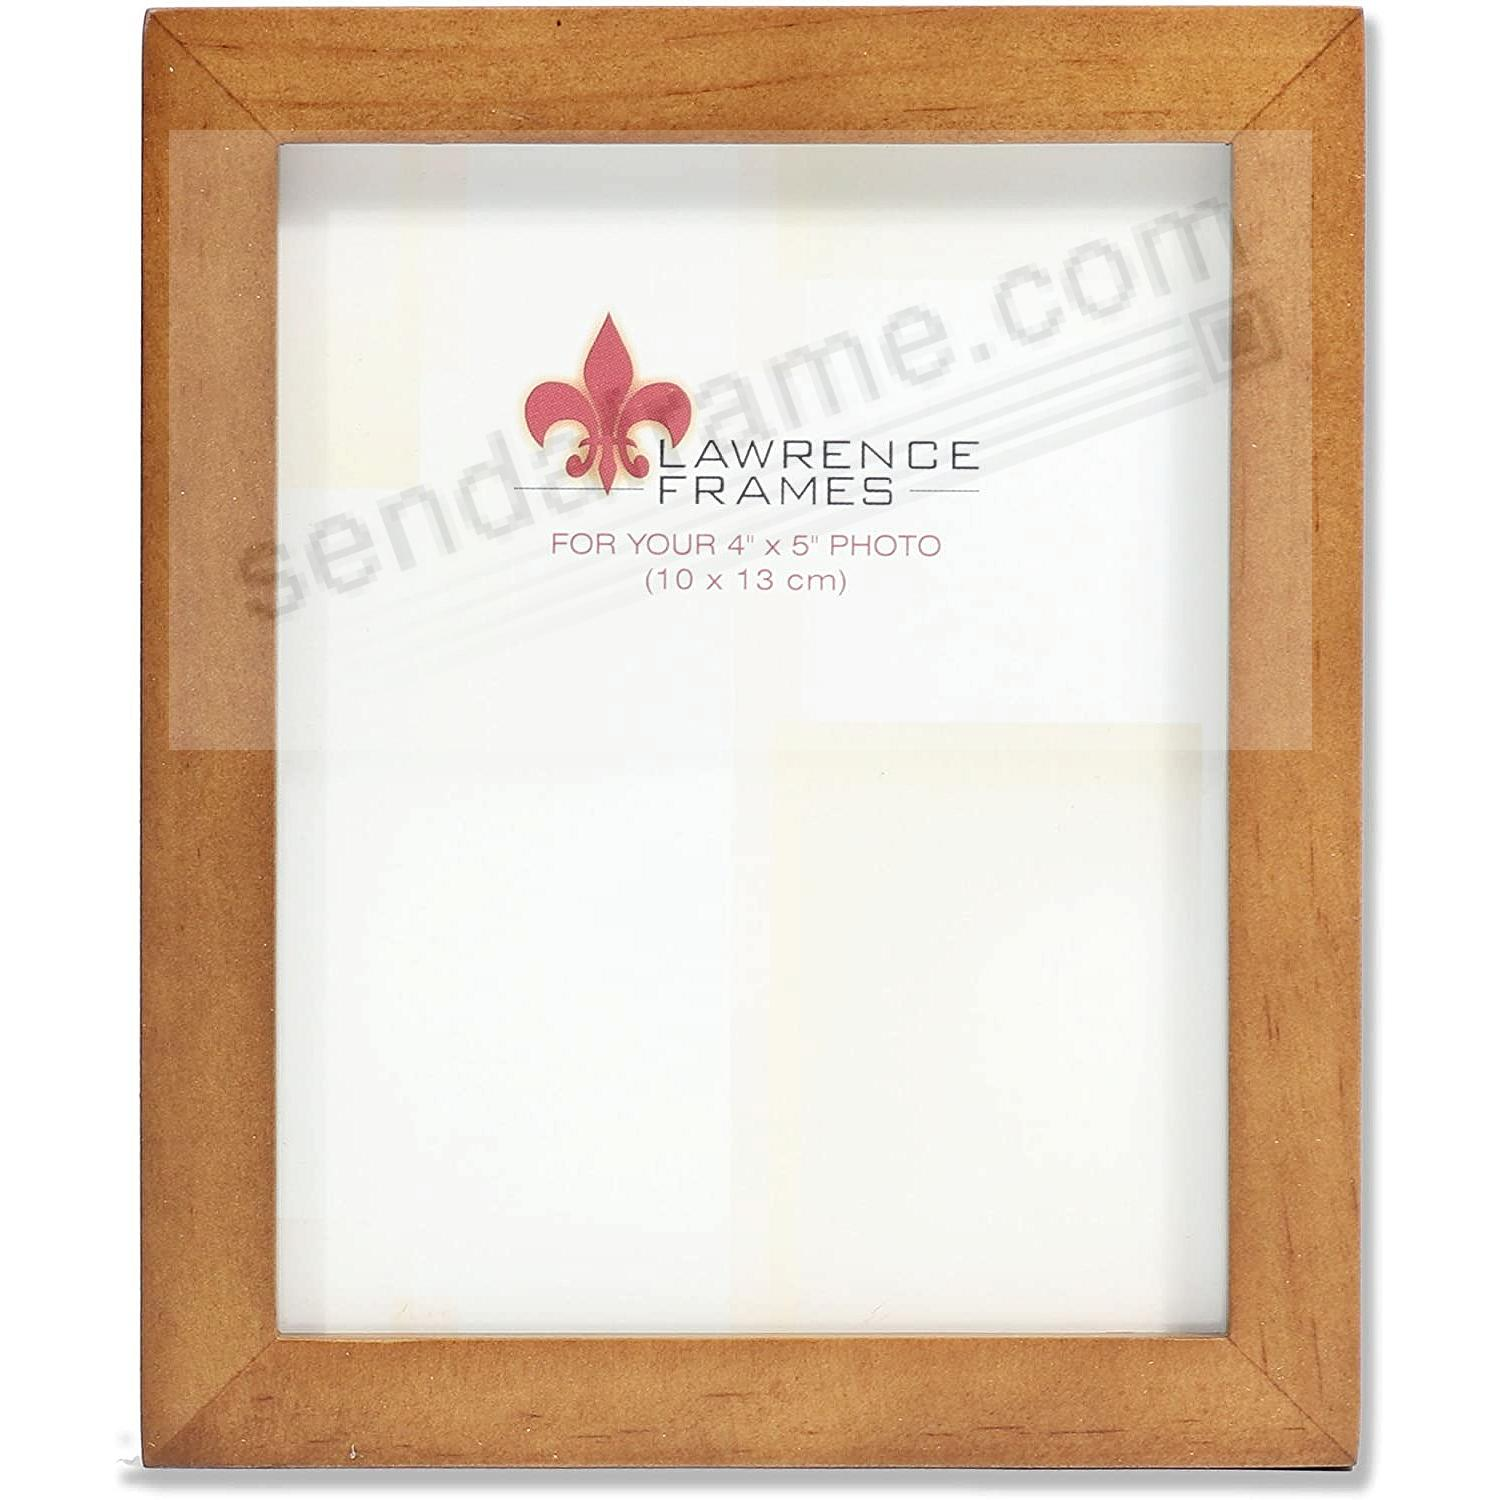 Nutmeg Square Corner 4x5 Frame By Lawrence Picture Frames Photo